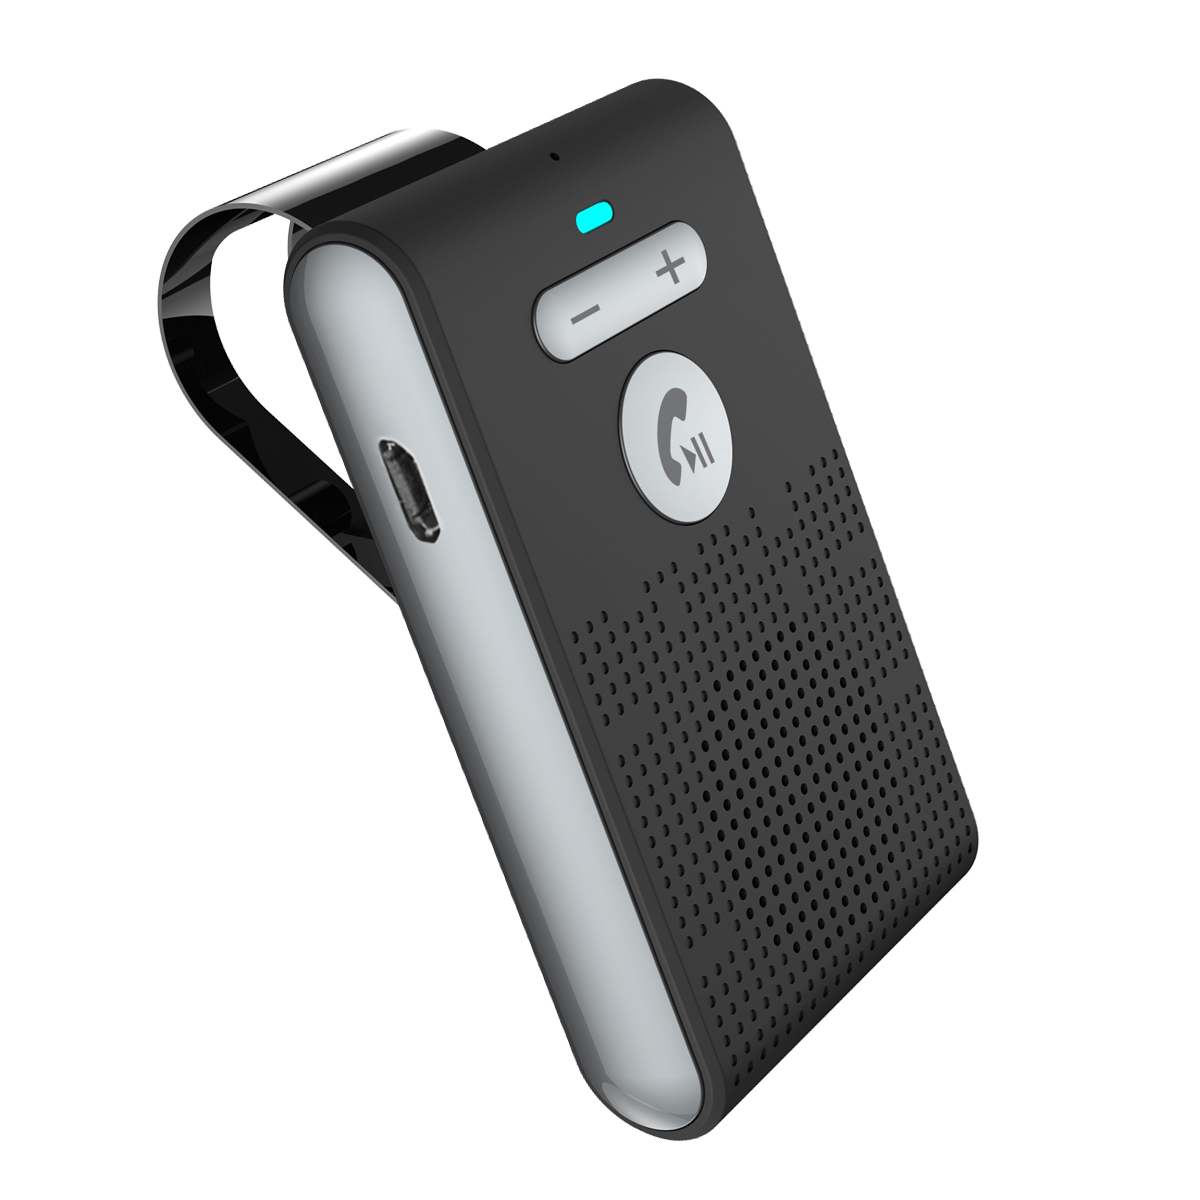 Multipoint speakerphone <strong>bluetooth</strong> V4.2 hands-free <strong>car</strong> kit <strong>Visor</strong> Board hands-free phone call <strong>bluetooth</strong> device Adapter